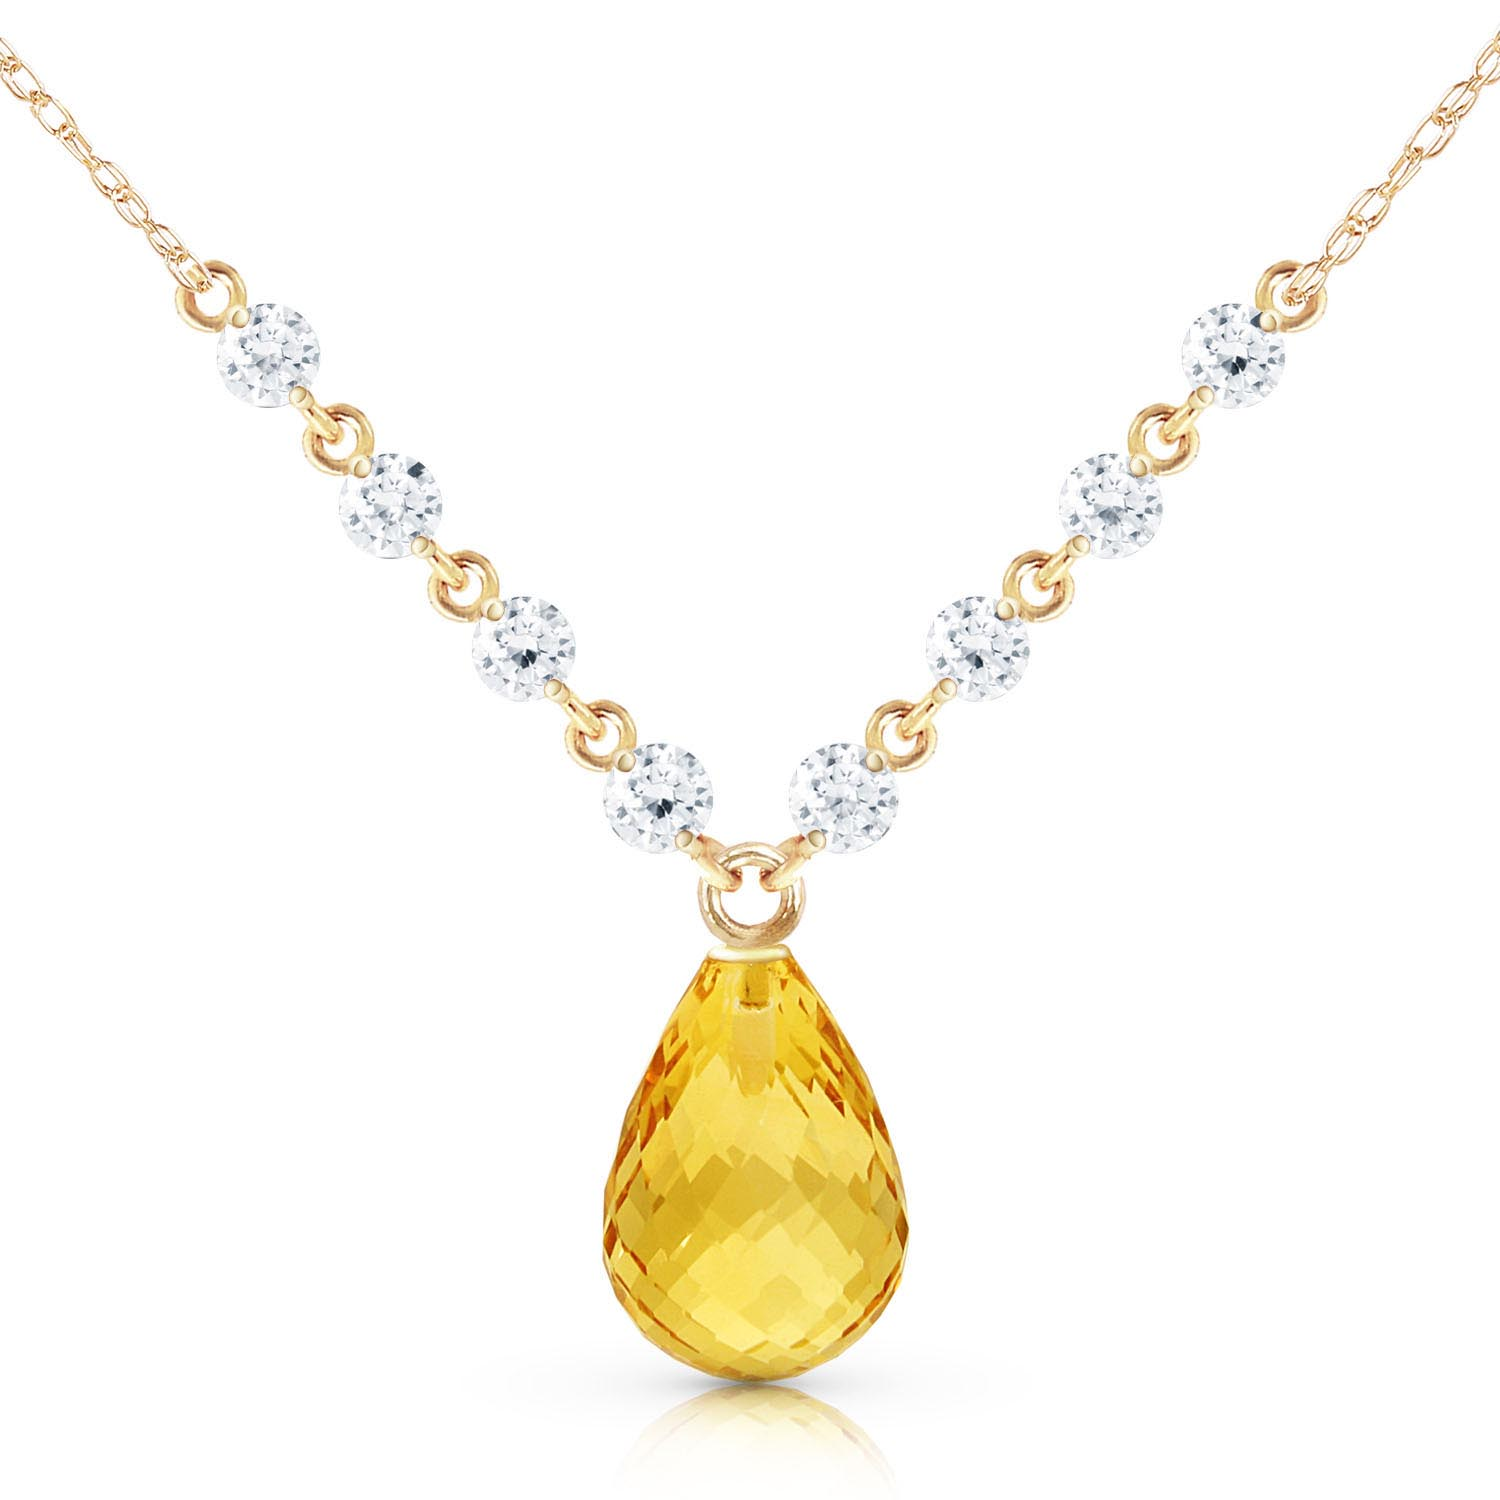 Citrine and Diamond Pendant Necklace 10.5ct in 9ct Gold